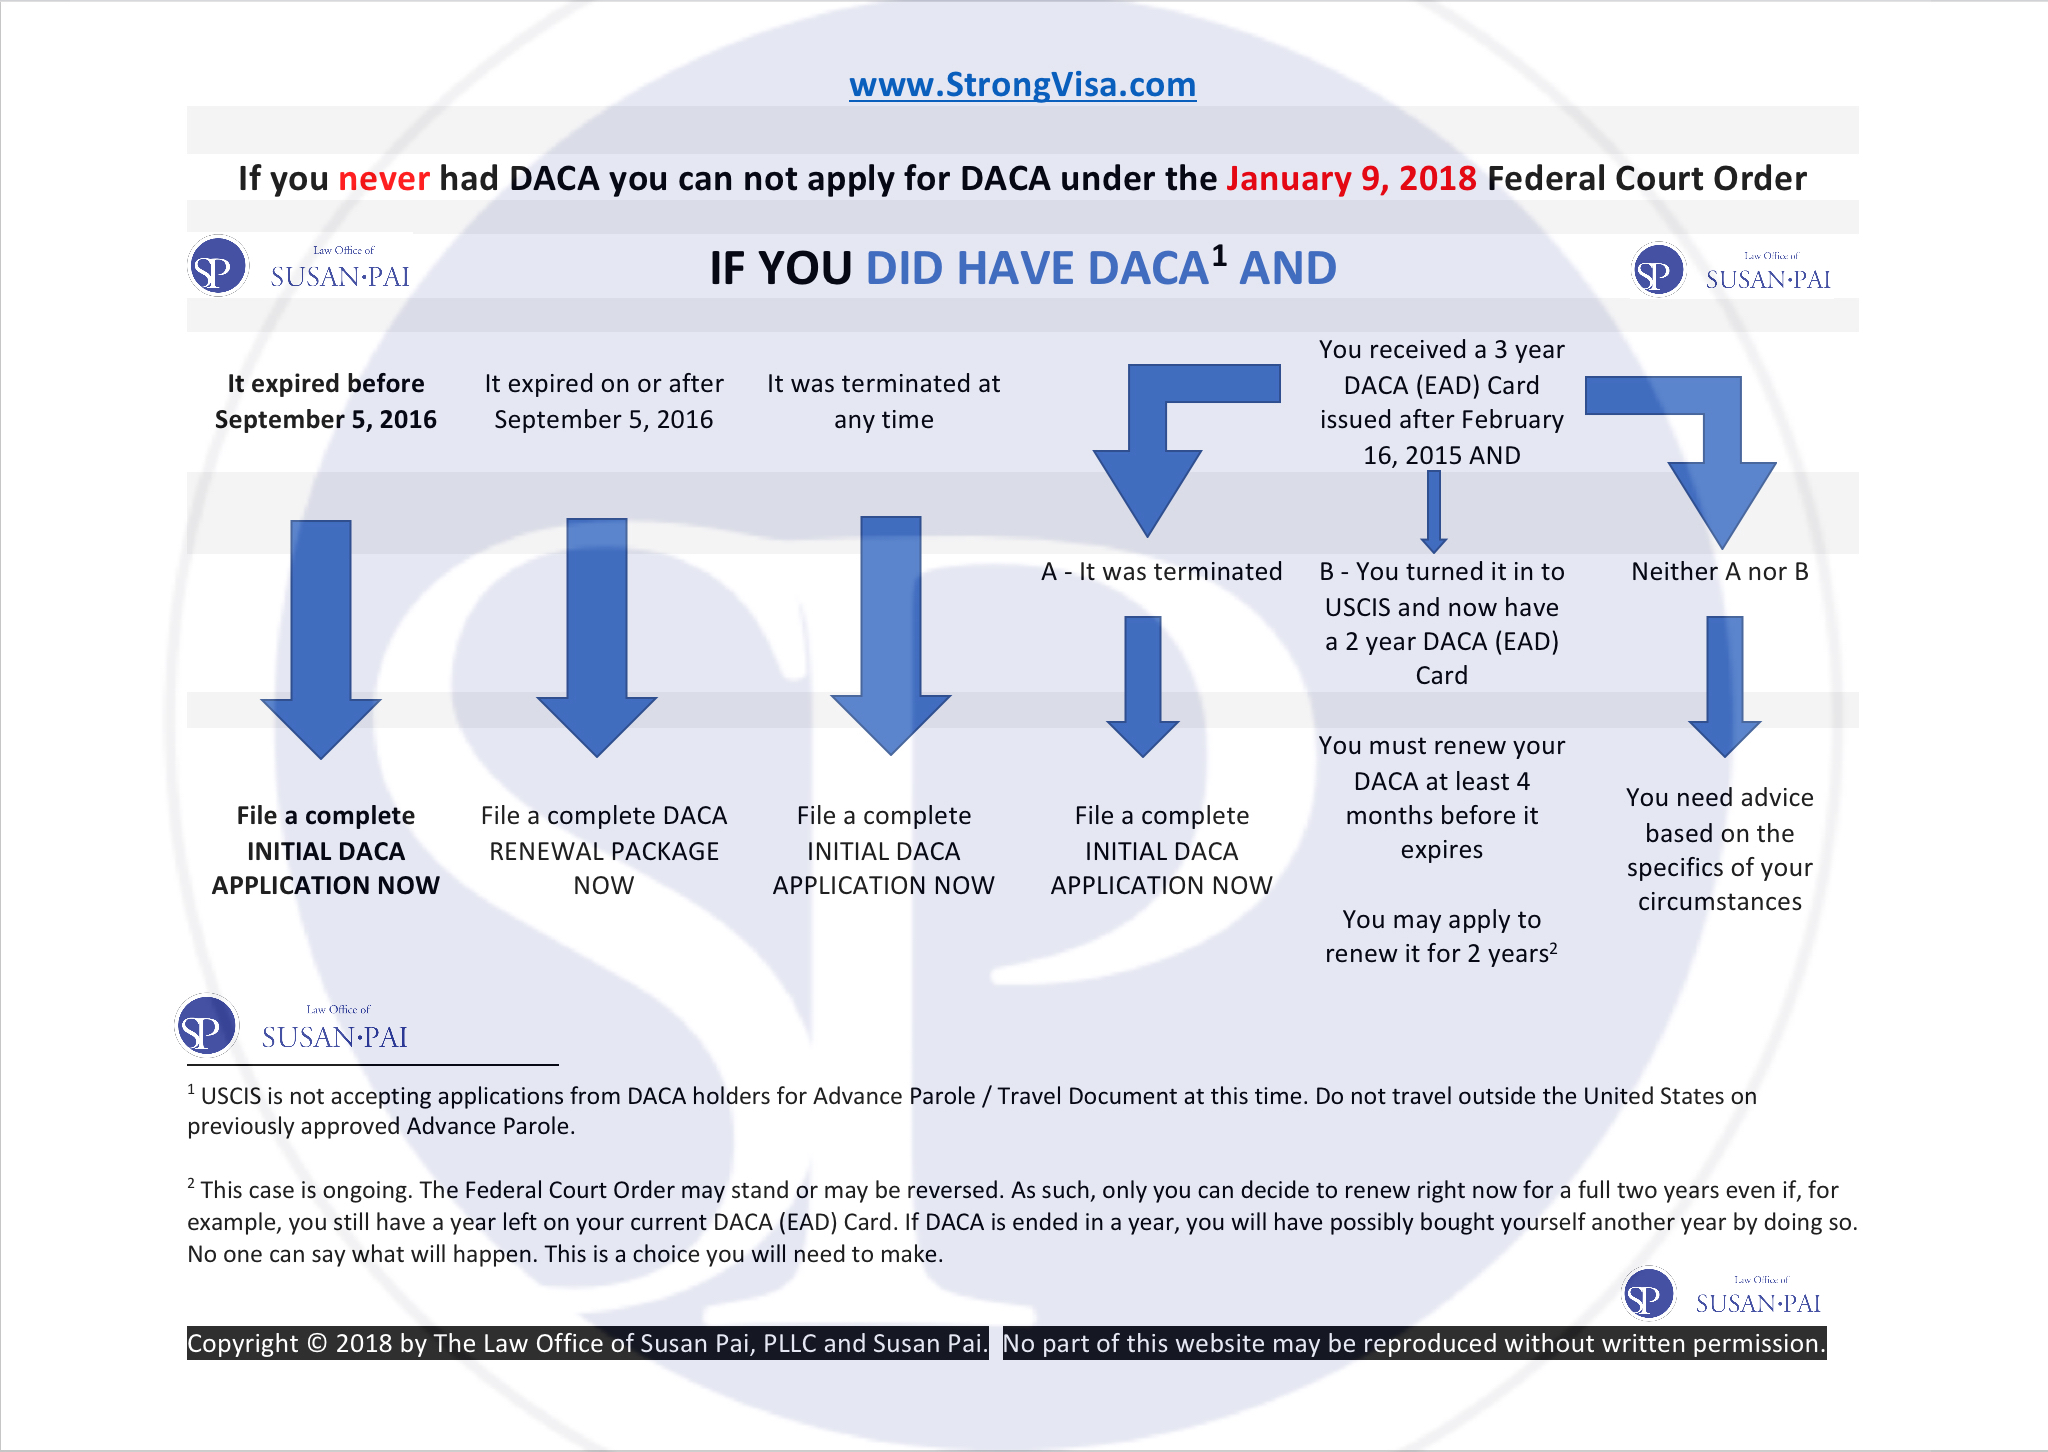 FREE CLE with Handouts - Post March 5, 2018 DACA-DREAMERS, How Do I